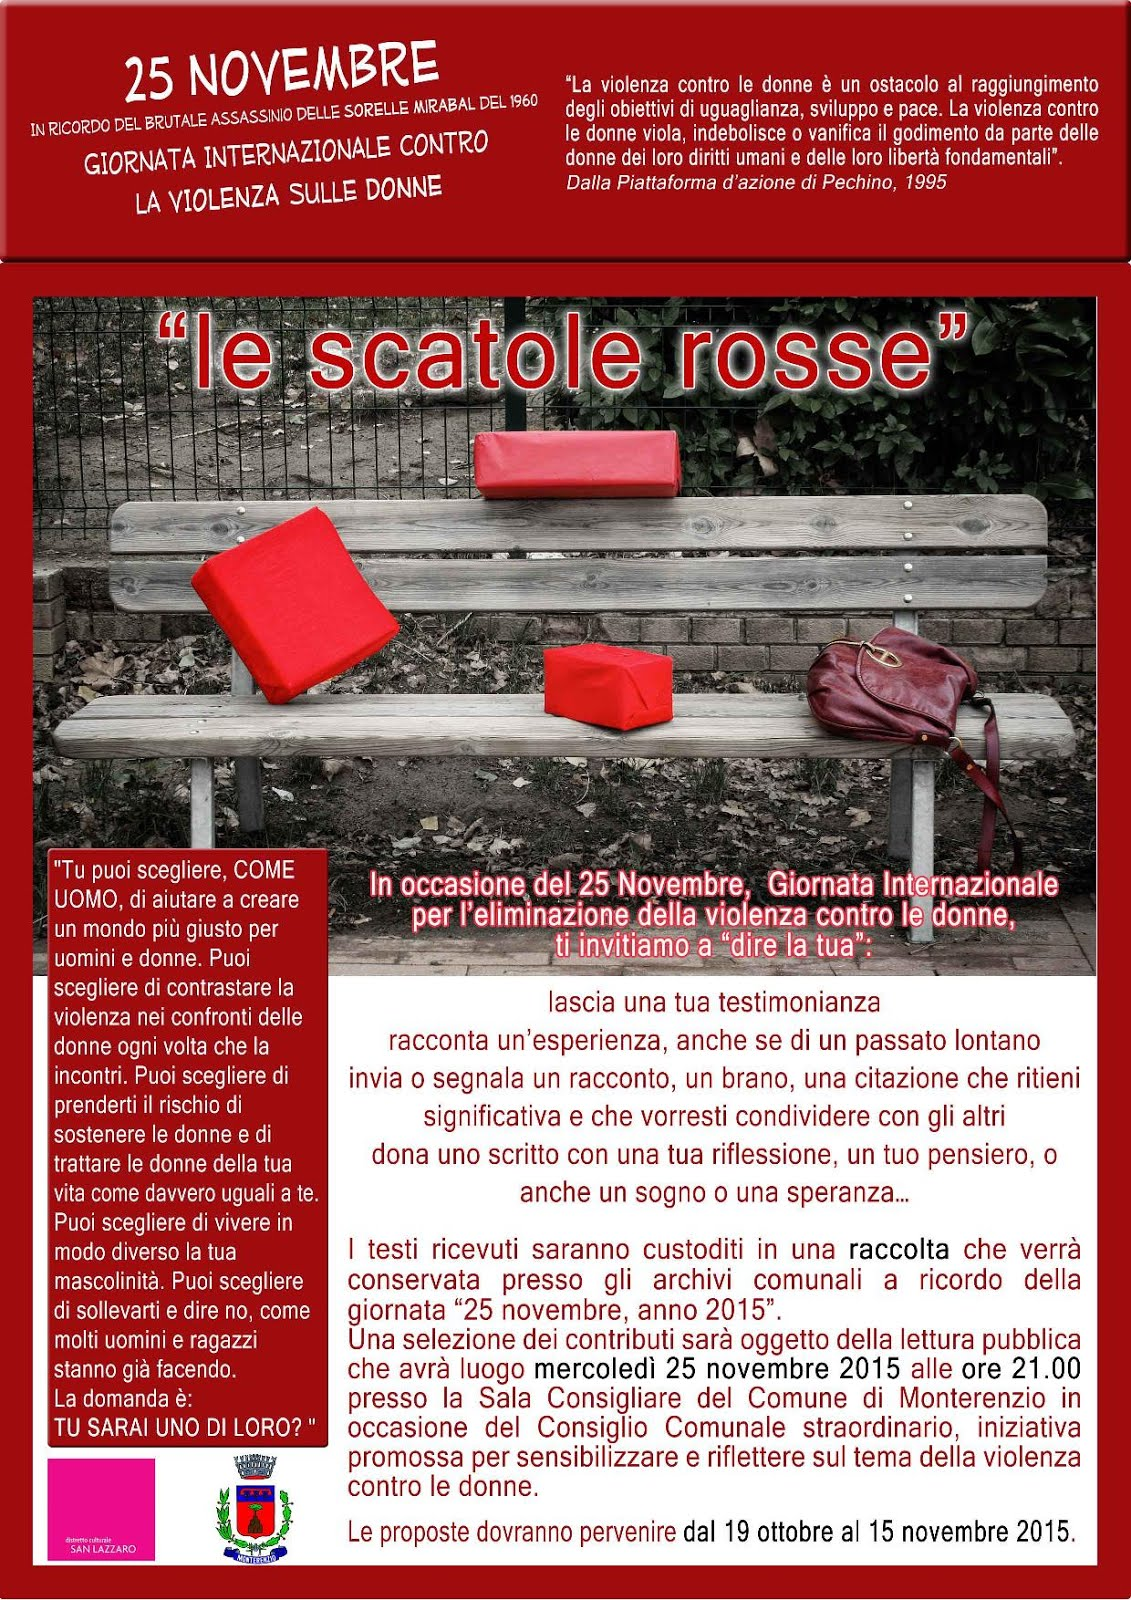 SCATOLE ROSSE